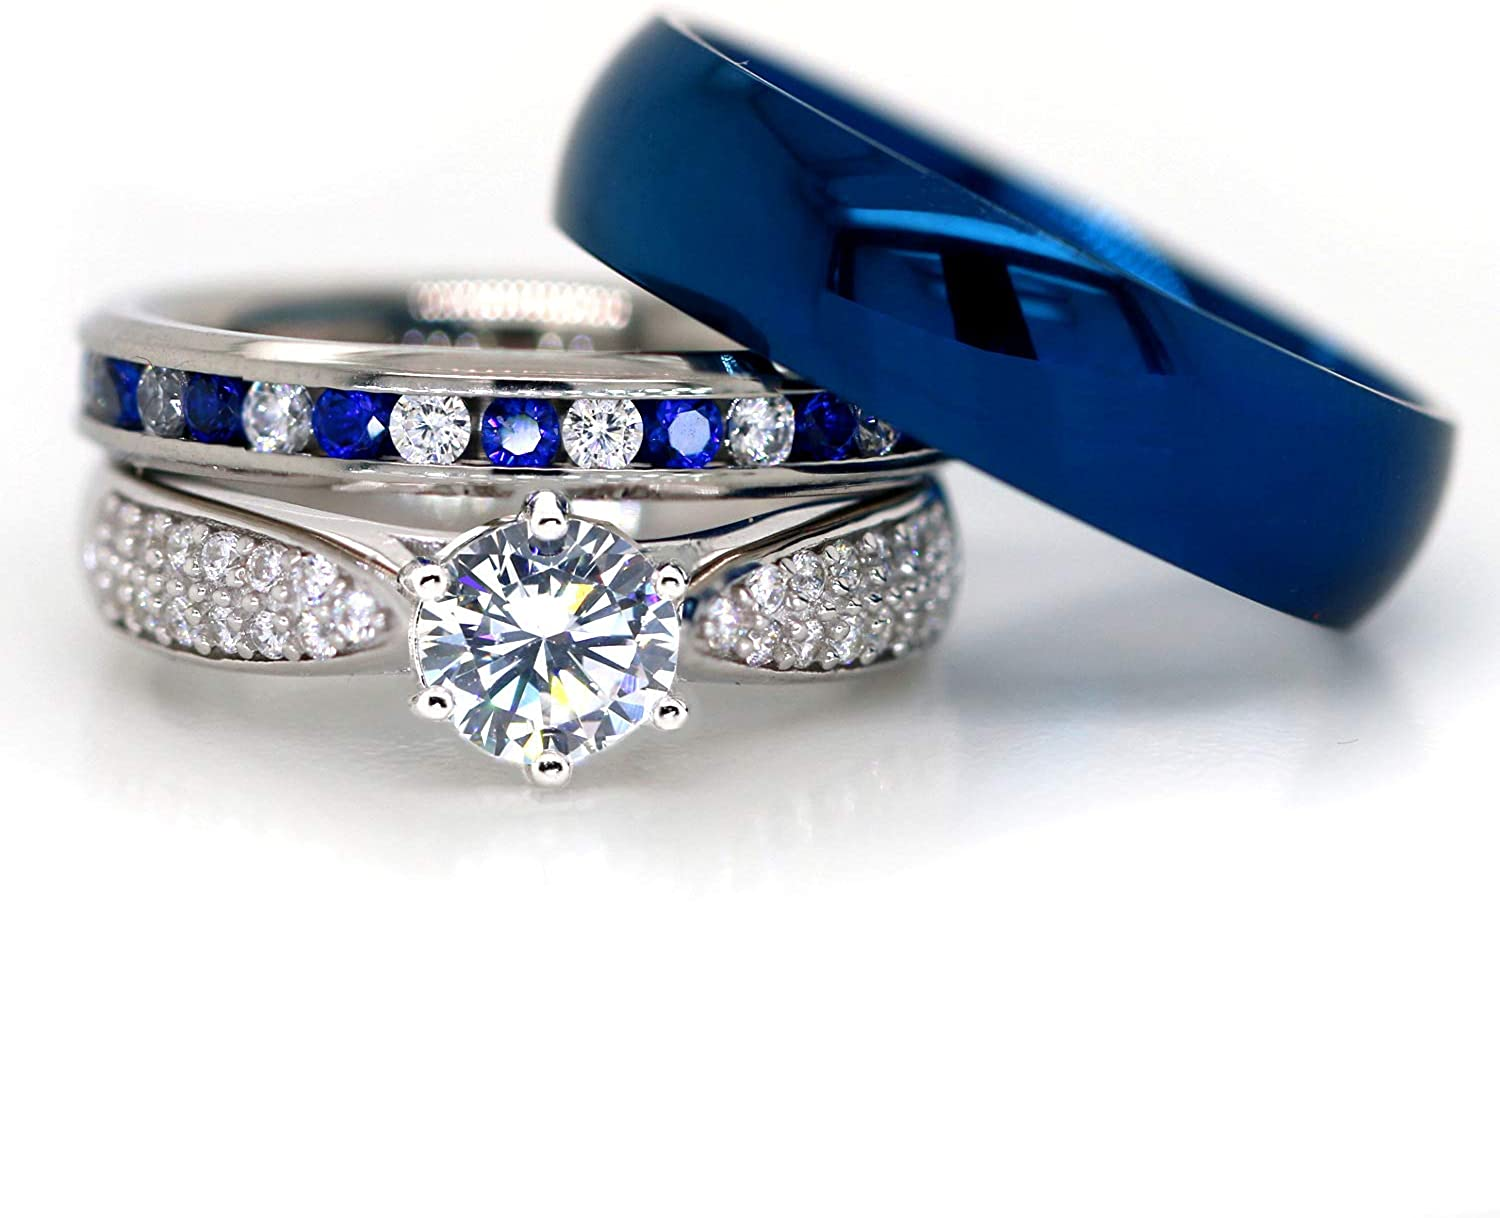 It is a picture of Kingsway Jewelry His and Hers 35 Sterling Silver Blue Saphire Stainless Steel Wedding Rings Set Blue #SP35BLMSBL